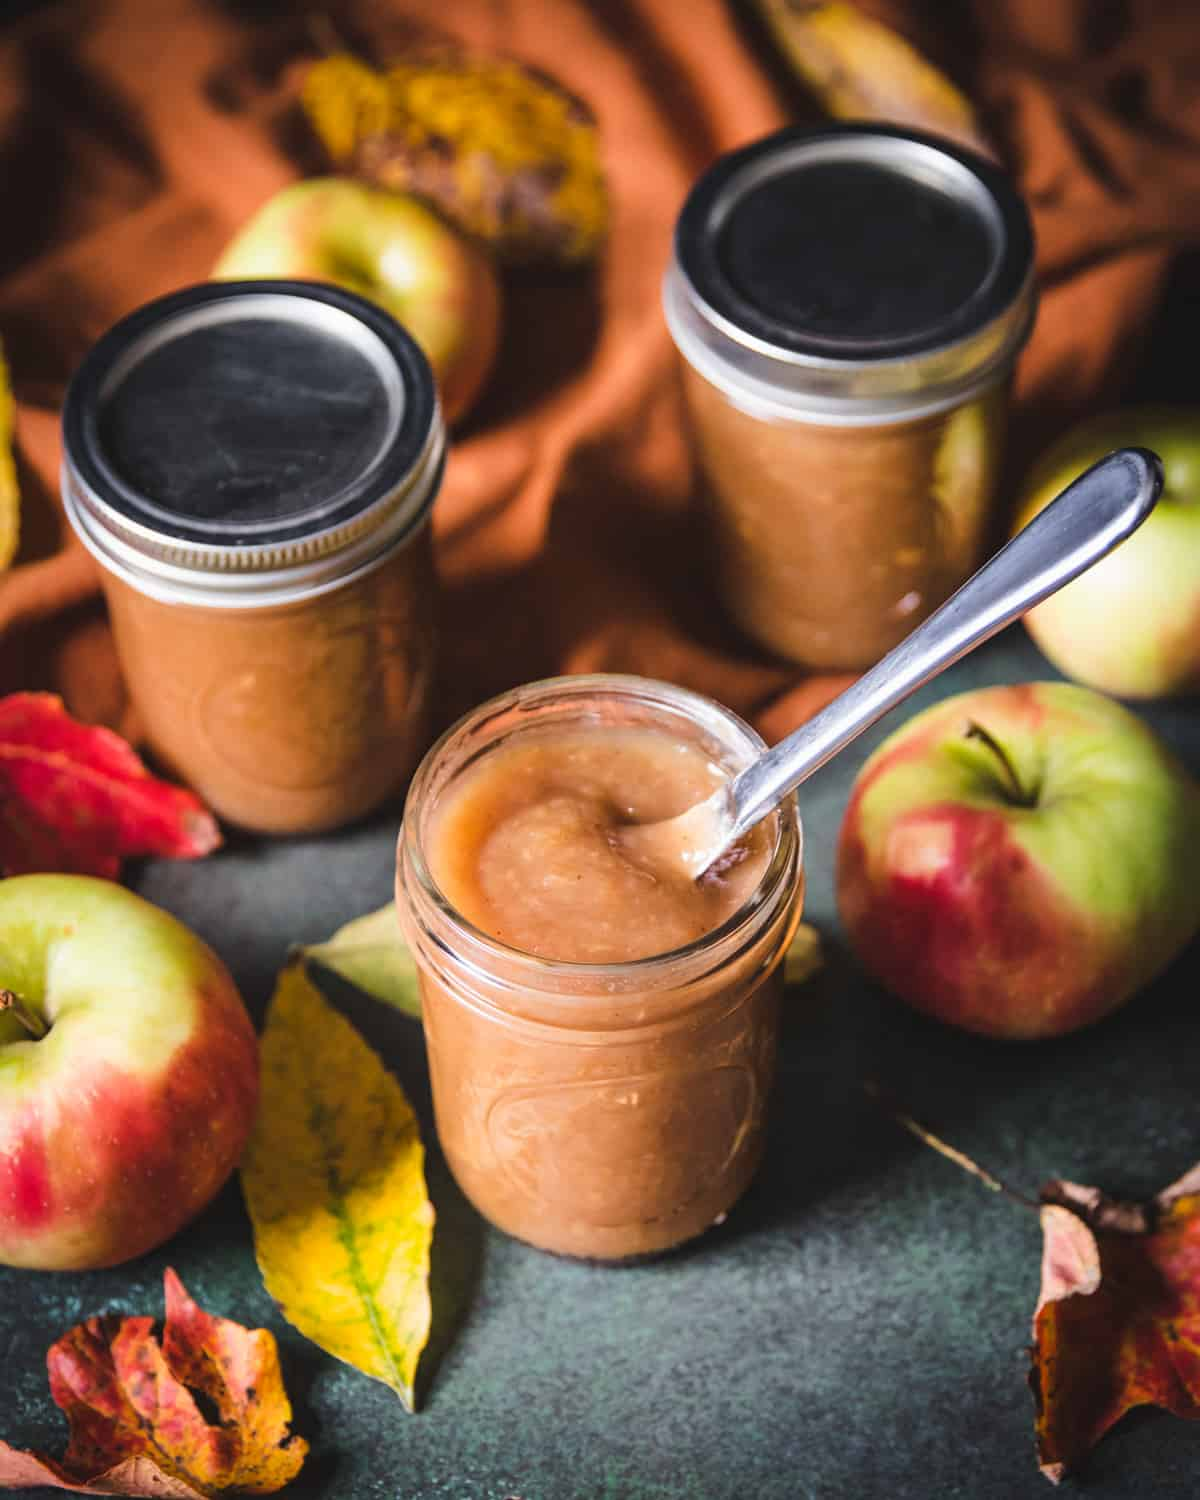 a jar of spiced apple butter with a knife